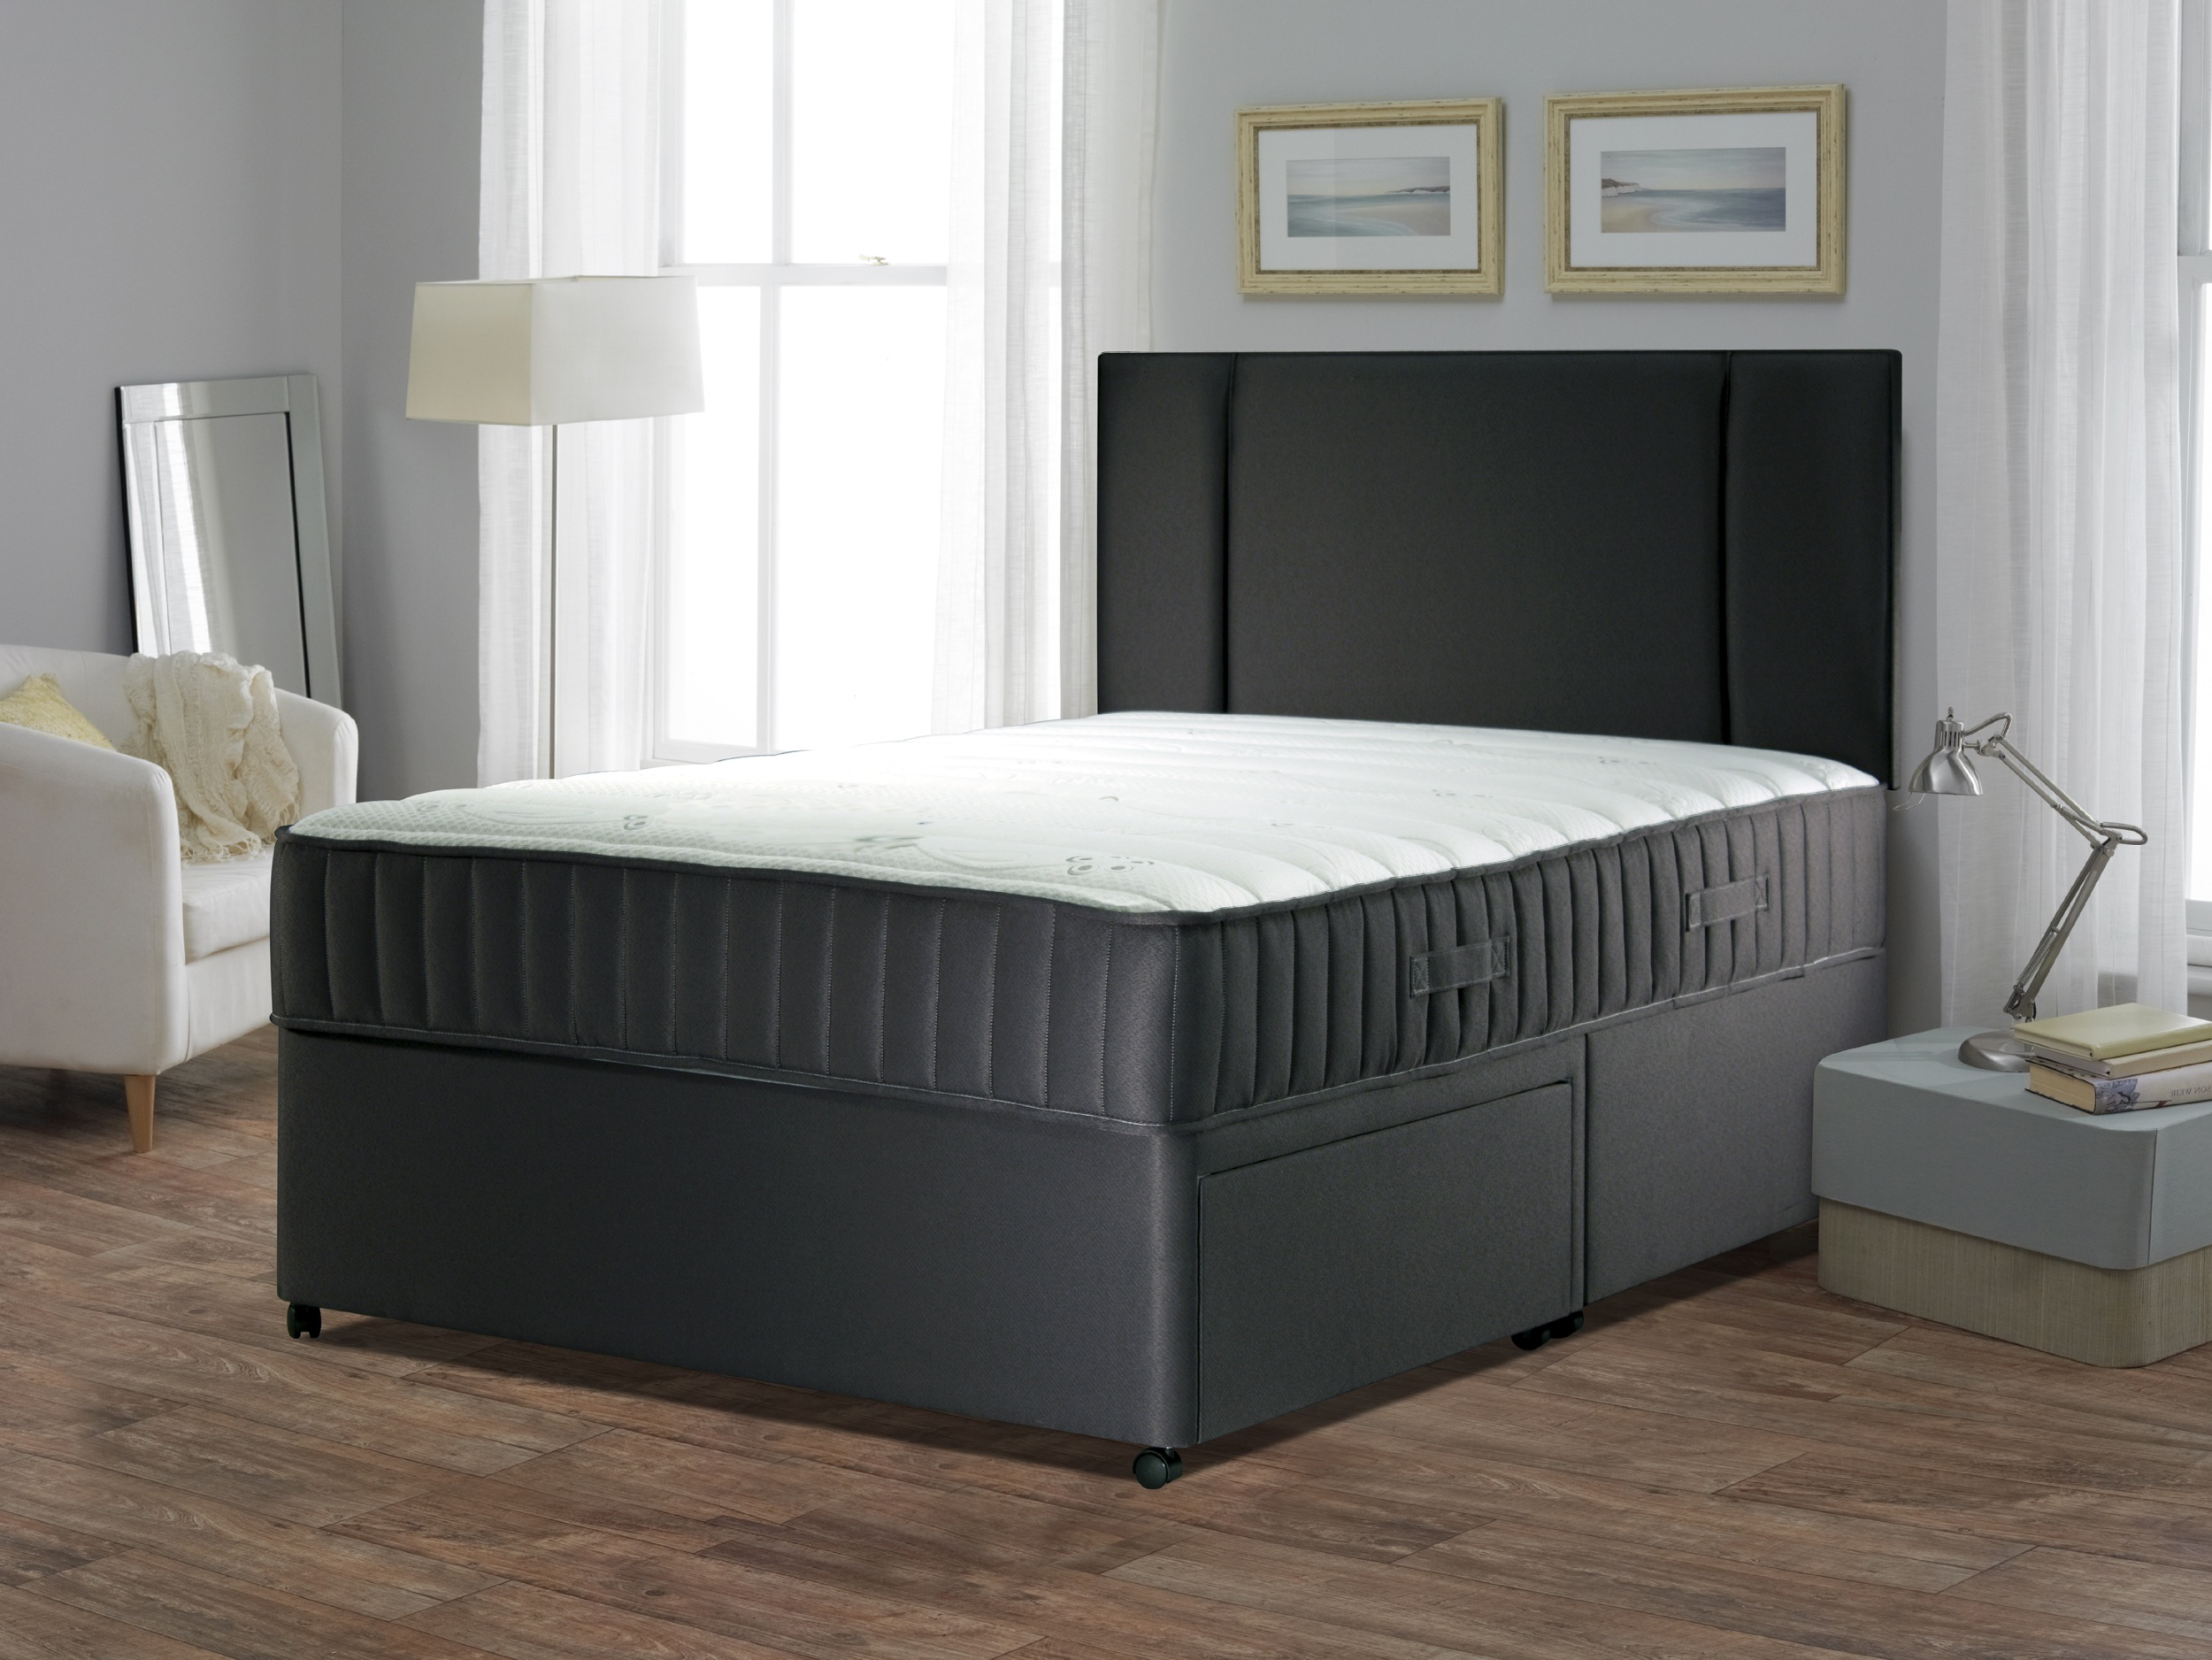 Single 4ft6 Double 5ft King Size 6ft Super Orthopaedic Divan Bed Mattress Ebay